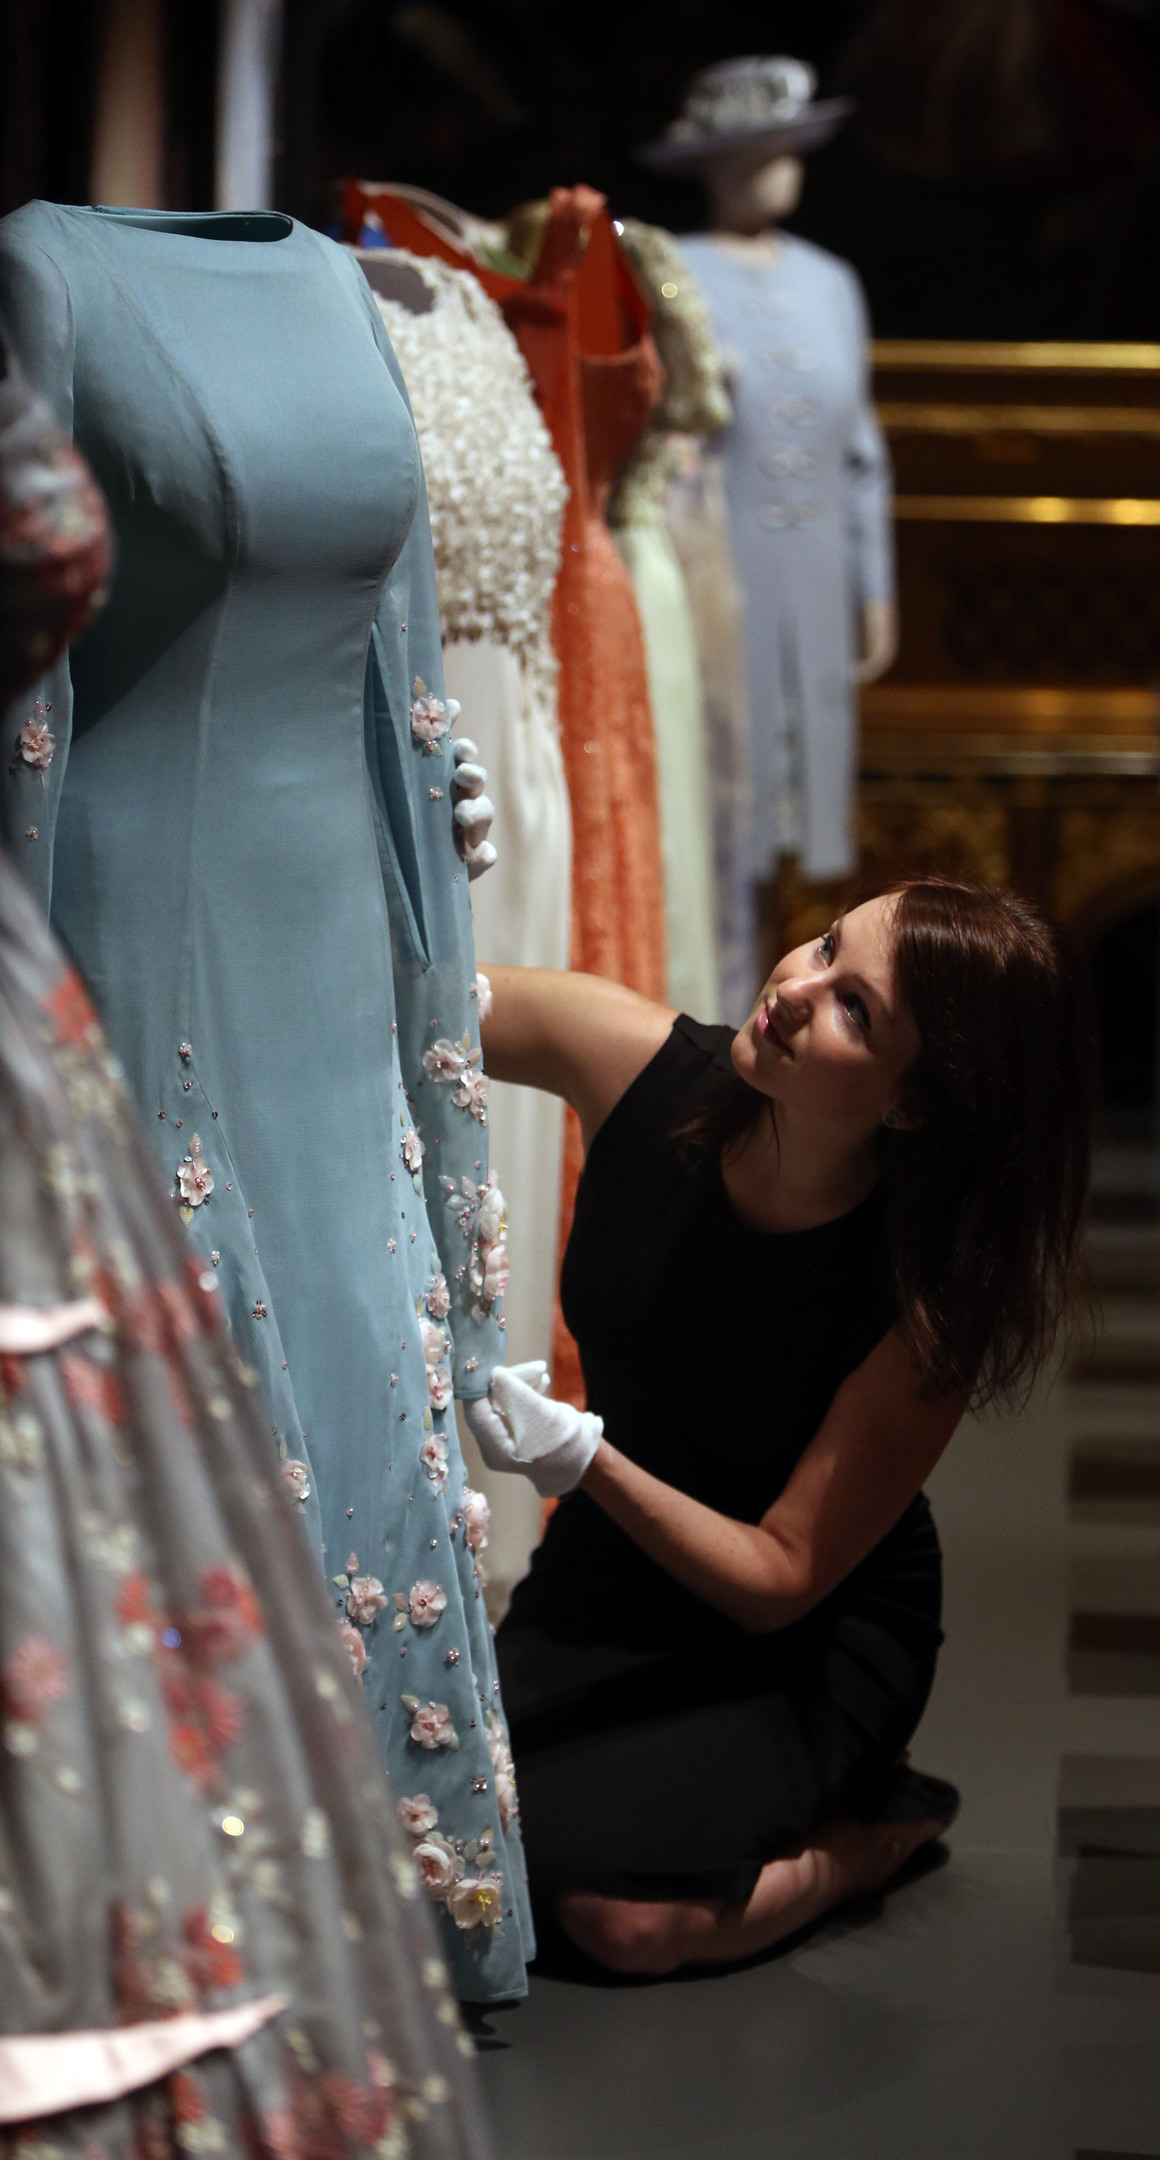 Royal Collection staff member Roxy Gilhooley arranges a selection of dresses worn by The Queen, in the State Dining Room during a press preview for Fashioning a Reign: 90 Years of Style from the Queen's Wardrobe, an exhibition at Windsor Castle in Berkshire (Steve Parsons/PA Wire)